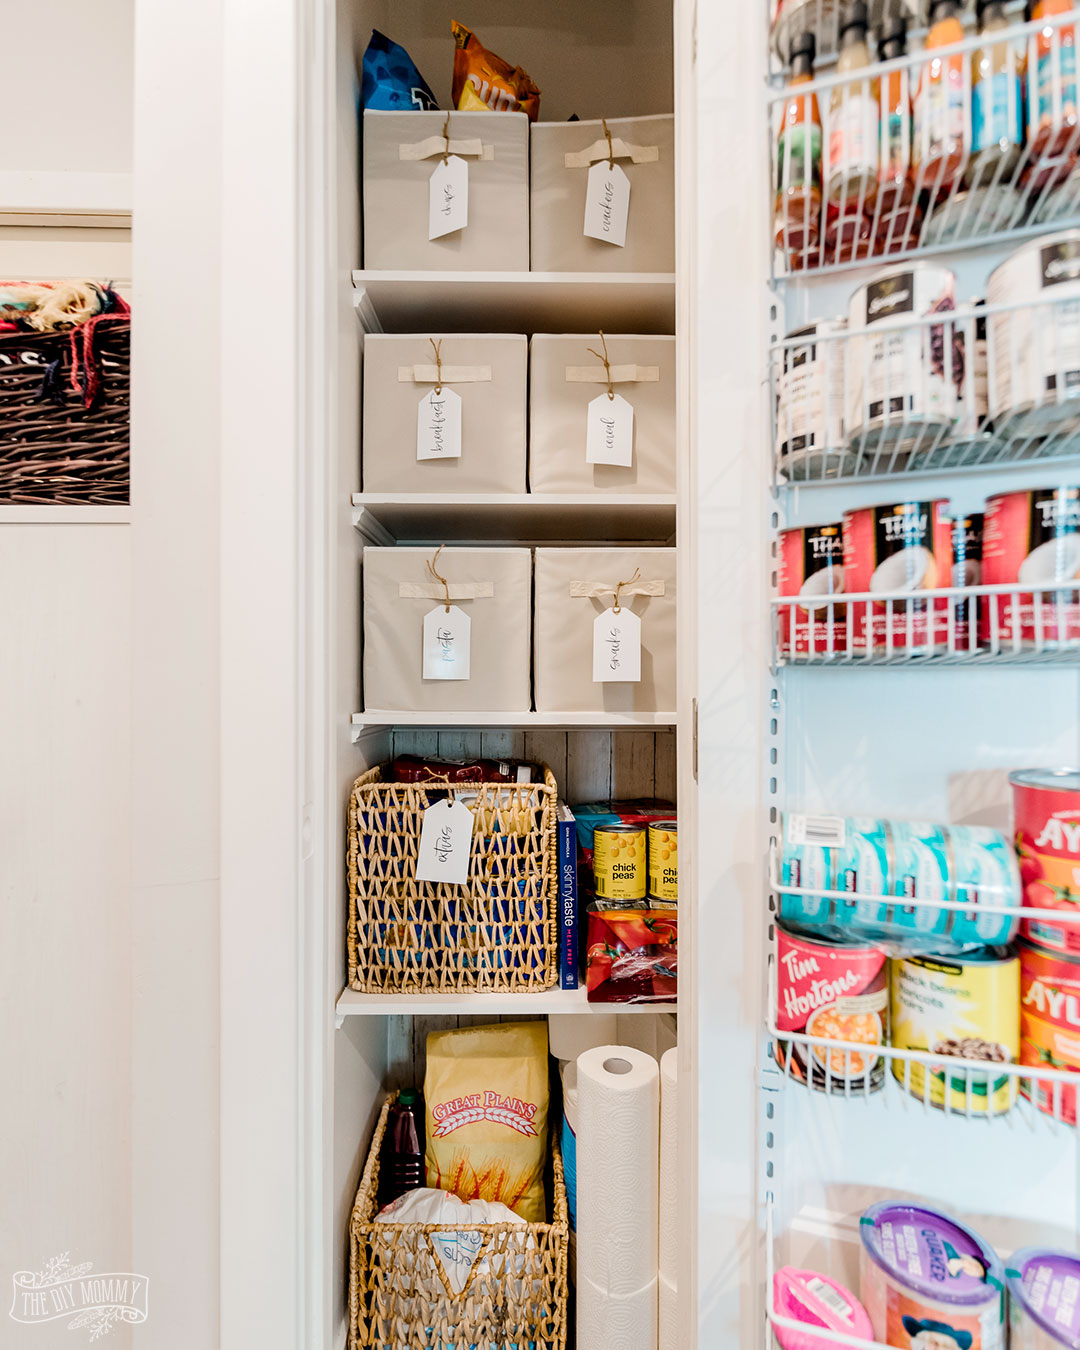 How to turn a tiny, useless closet into a useful, organized small pantry.